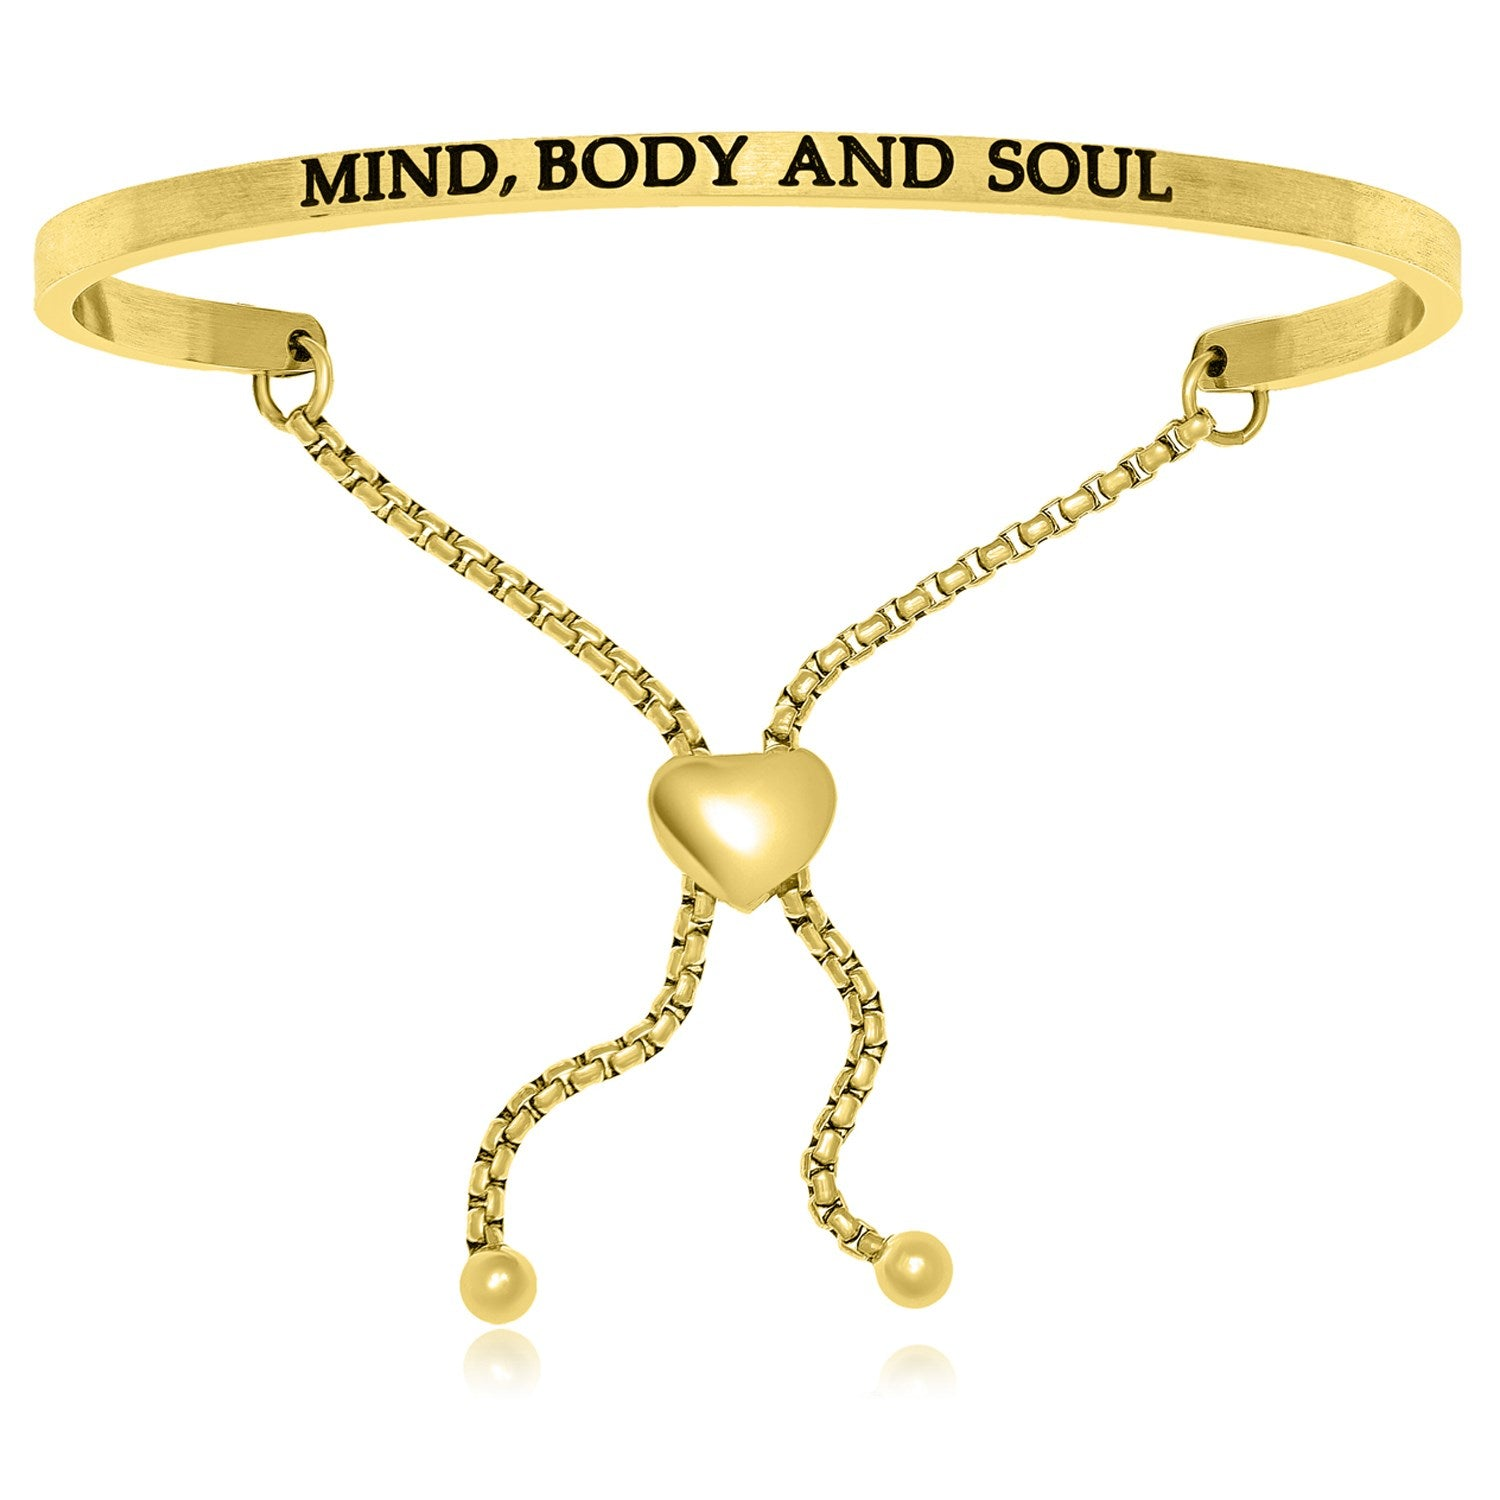 Yellow Stainless Steel Mind  Body And Soul Adjustable Bracelet